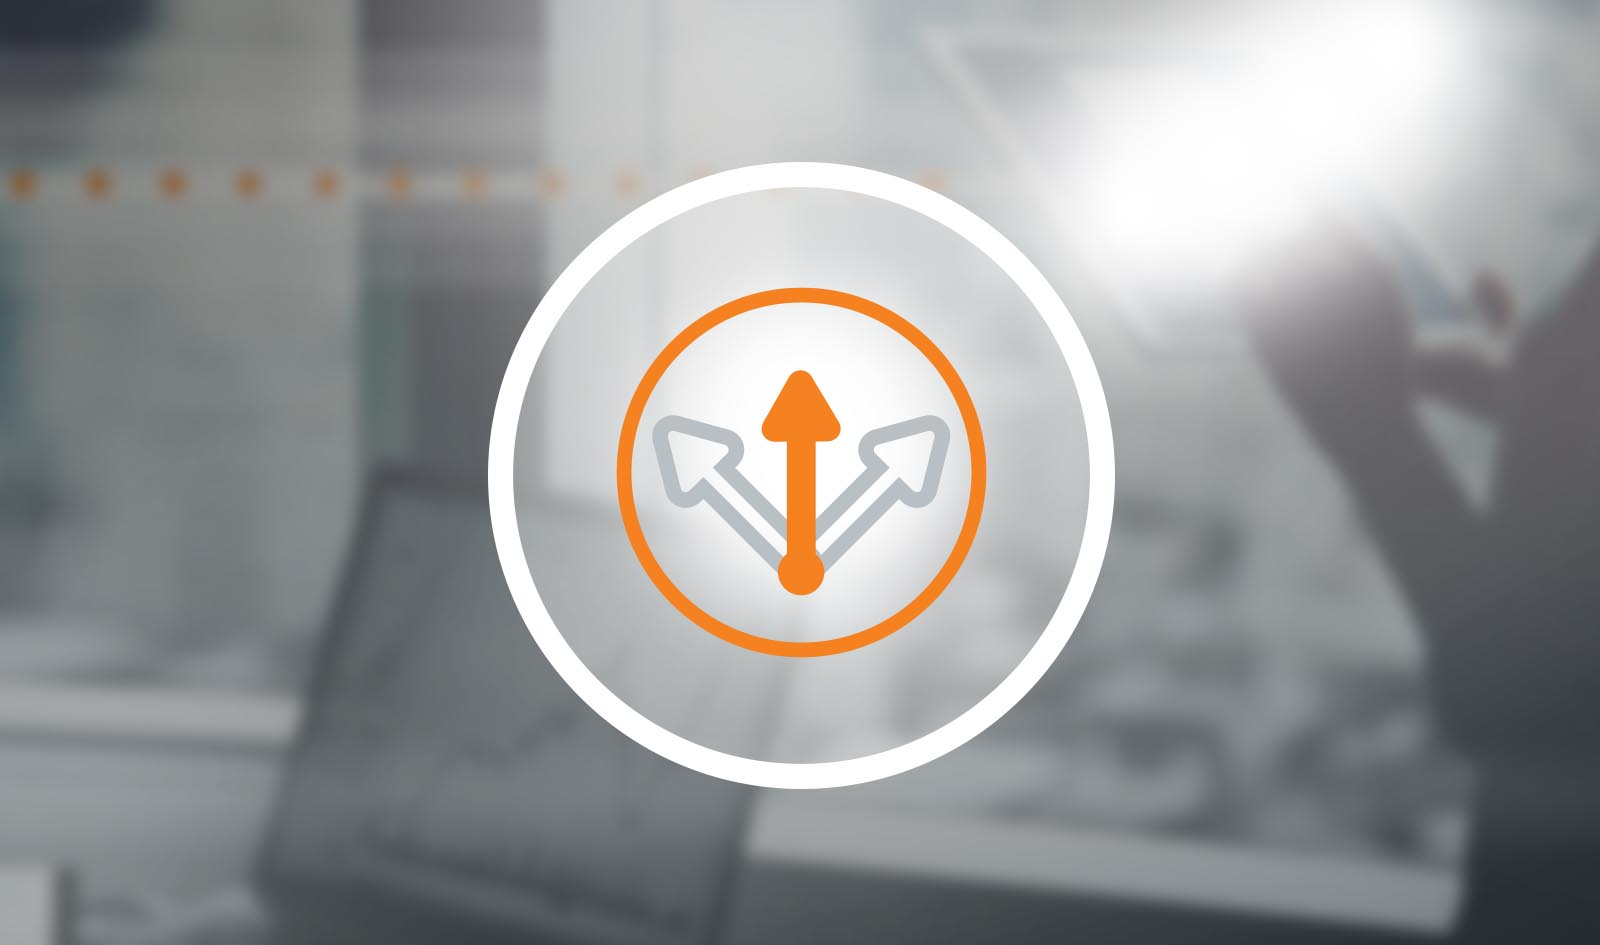 Support troubleshooting malfunctioning endpoints